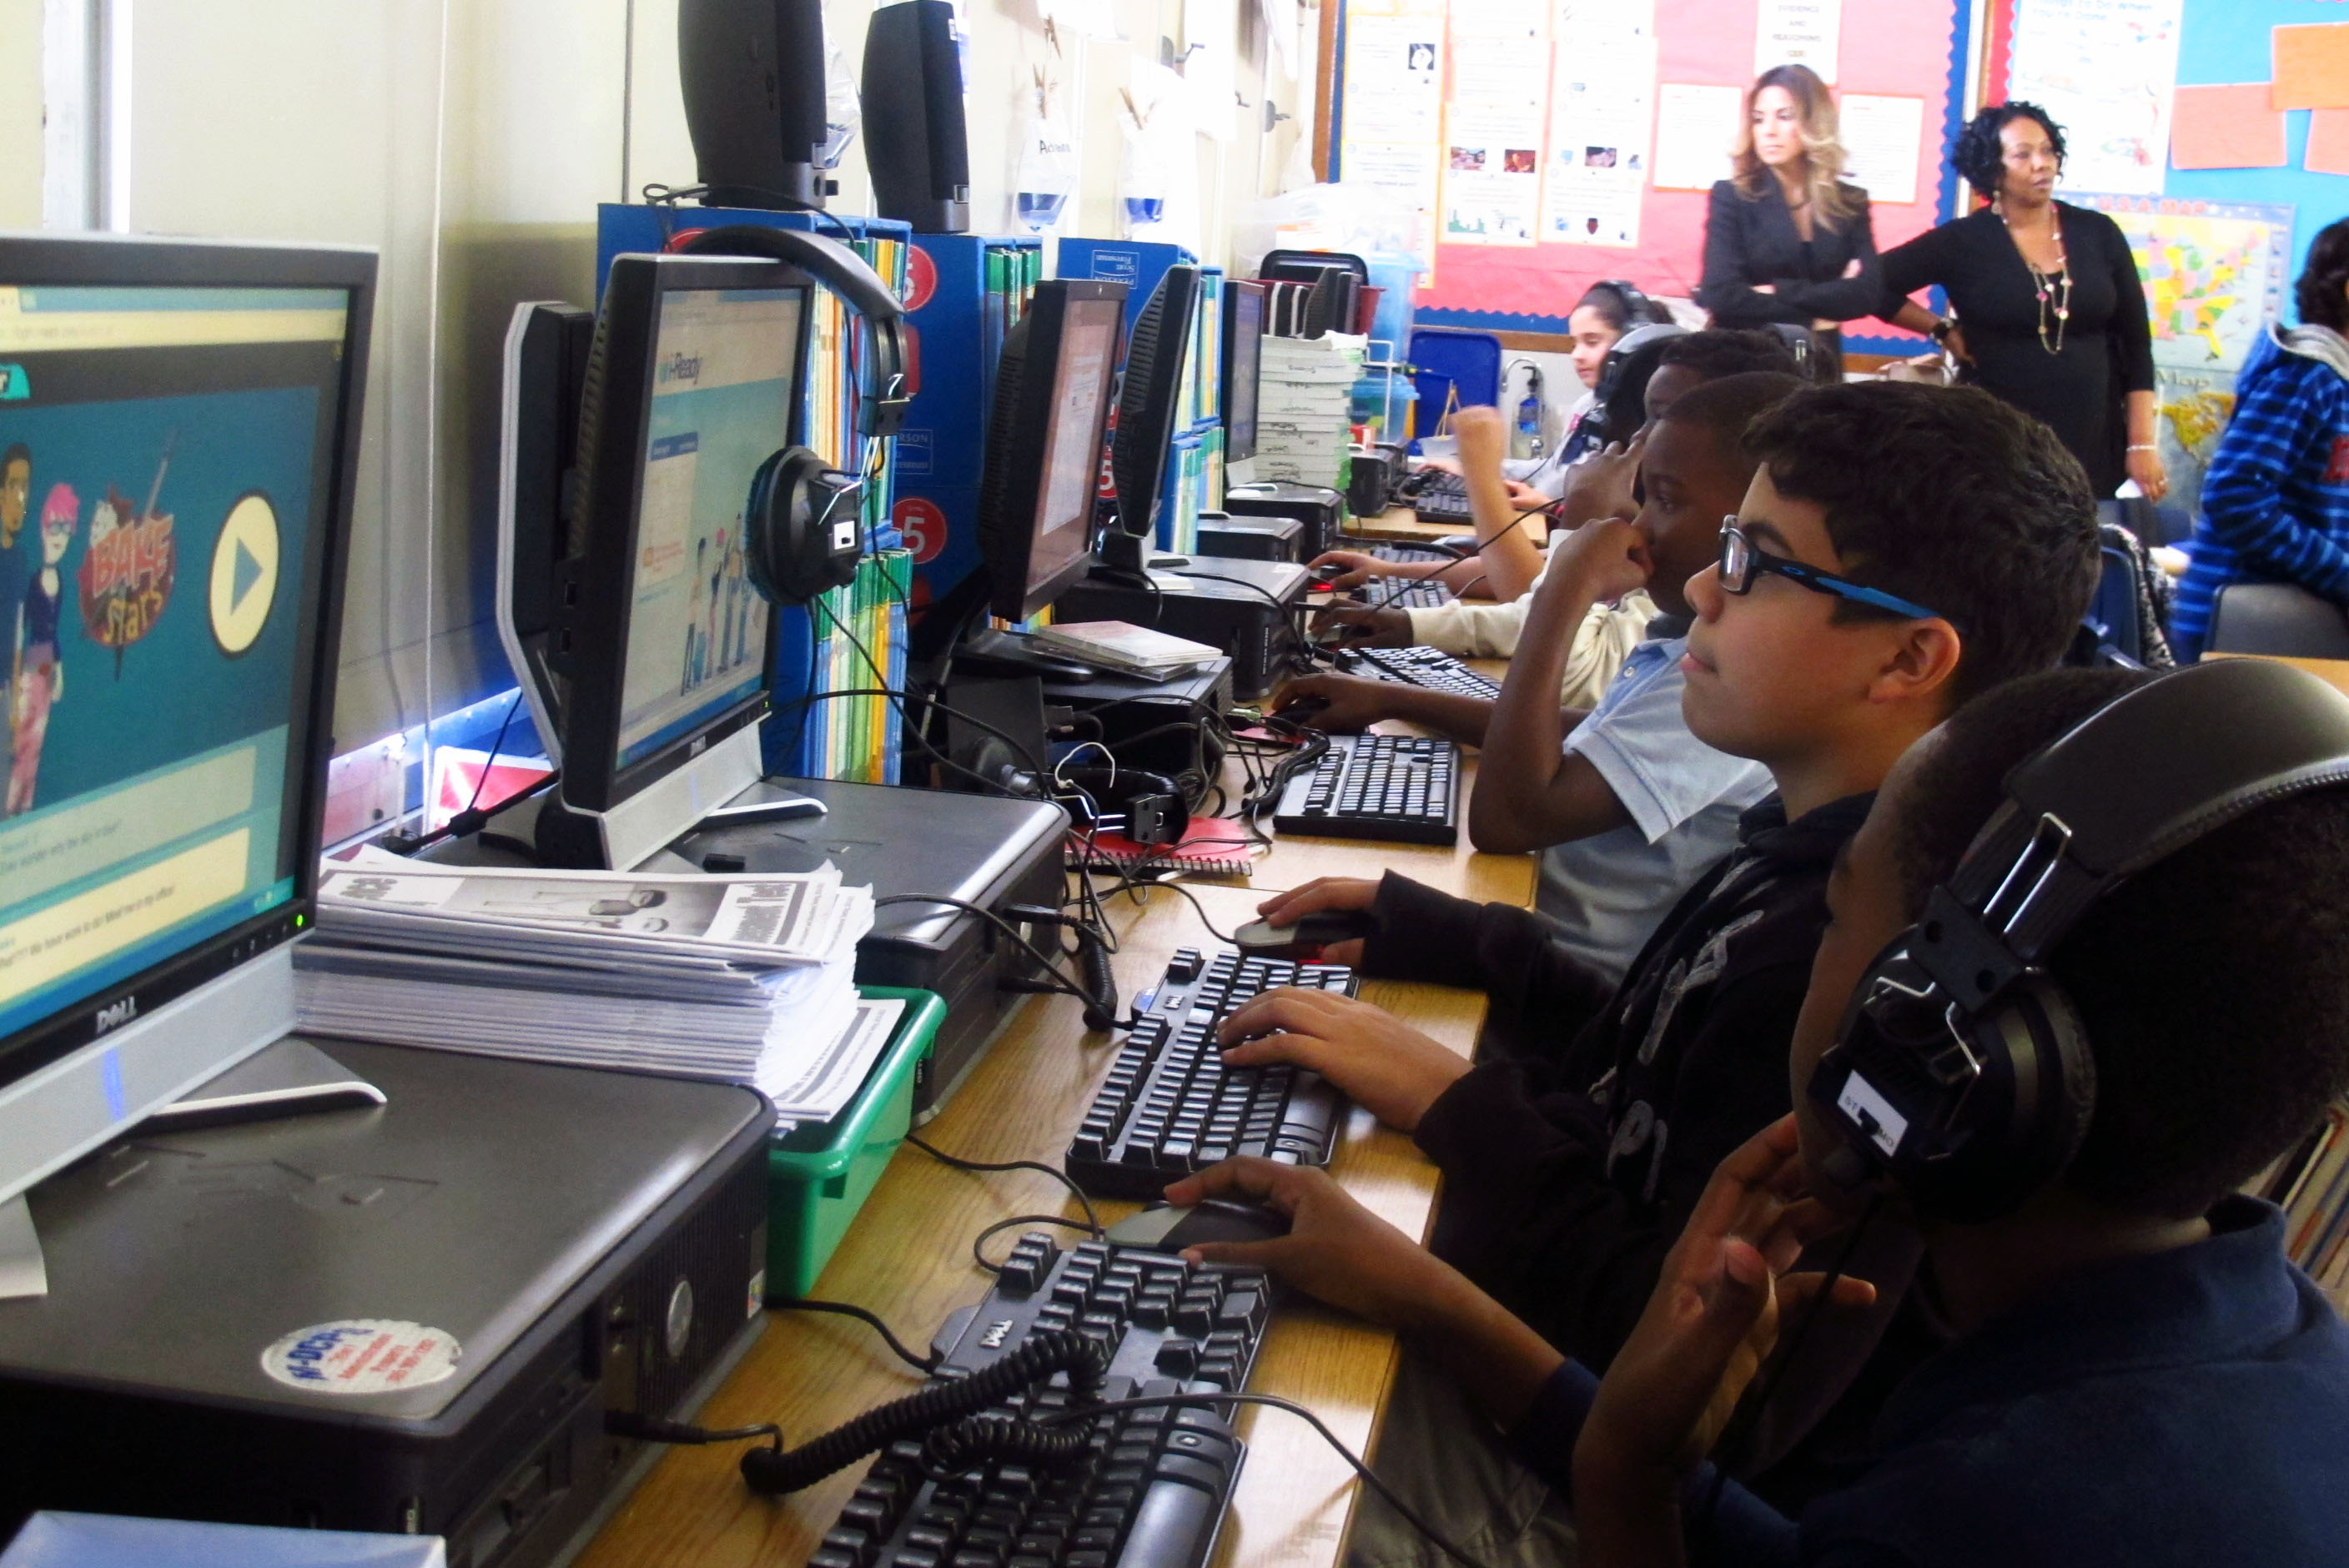 Elementary Classrooms Technology Use ~ Study finds more classroom technology doesn t mean